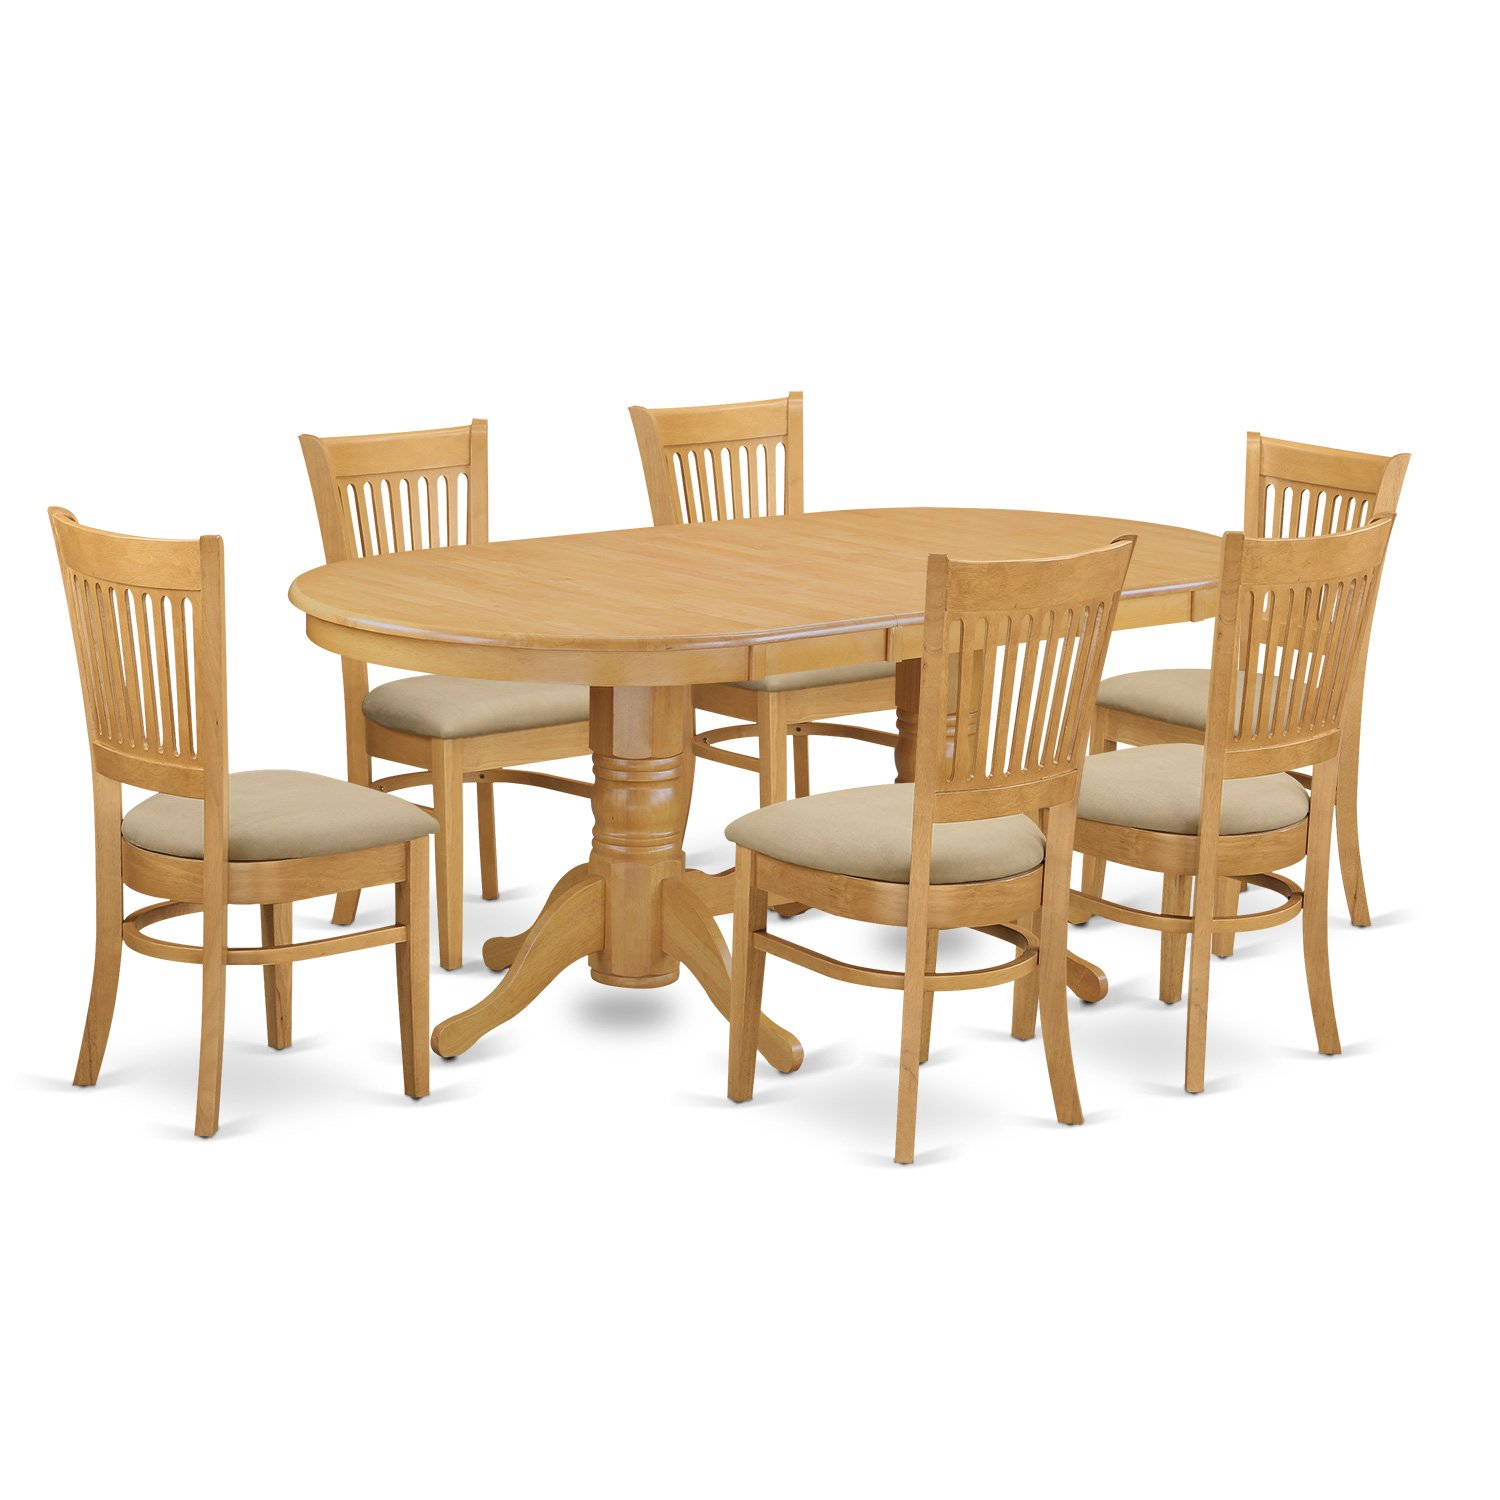 amazon com east west furniture vanc7 oak c 7 piece dining table amazon com east west furniture vanc7 oak c 7 piece dining table set kitchen dining